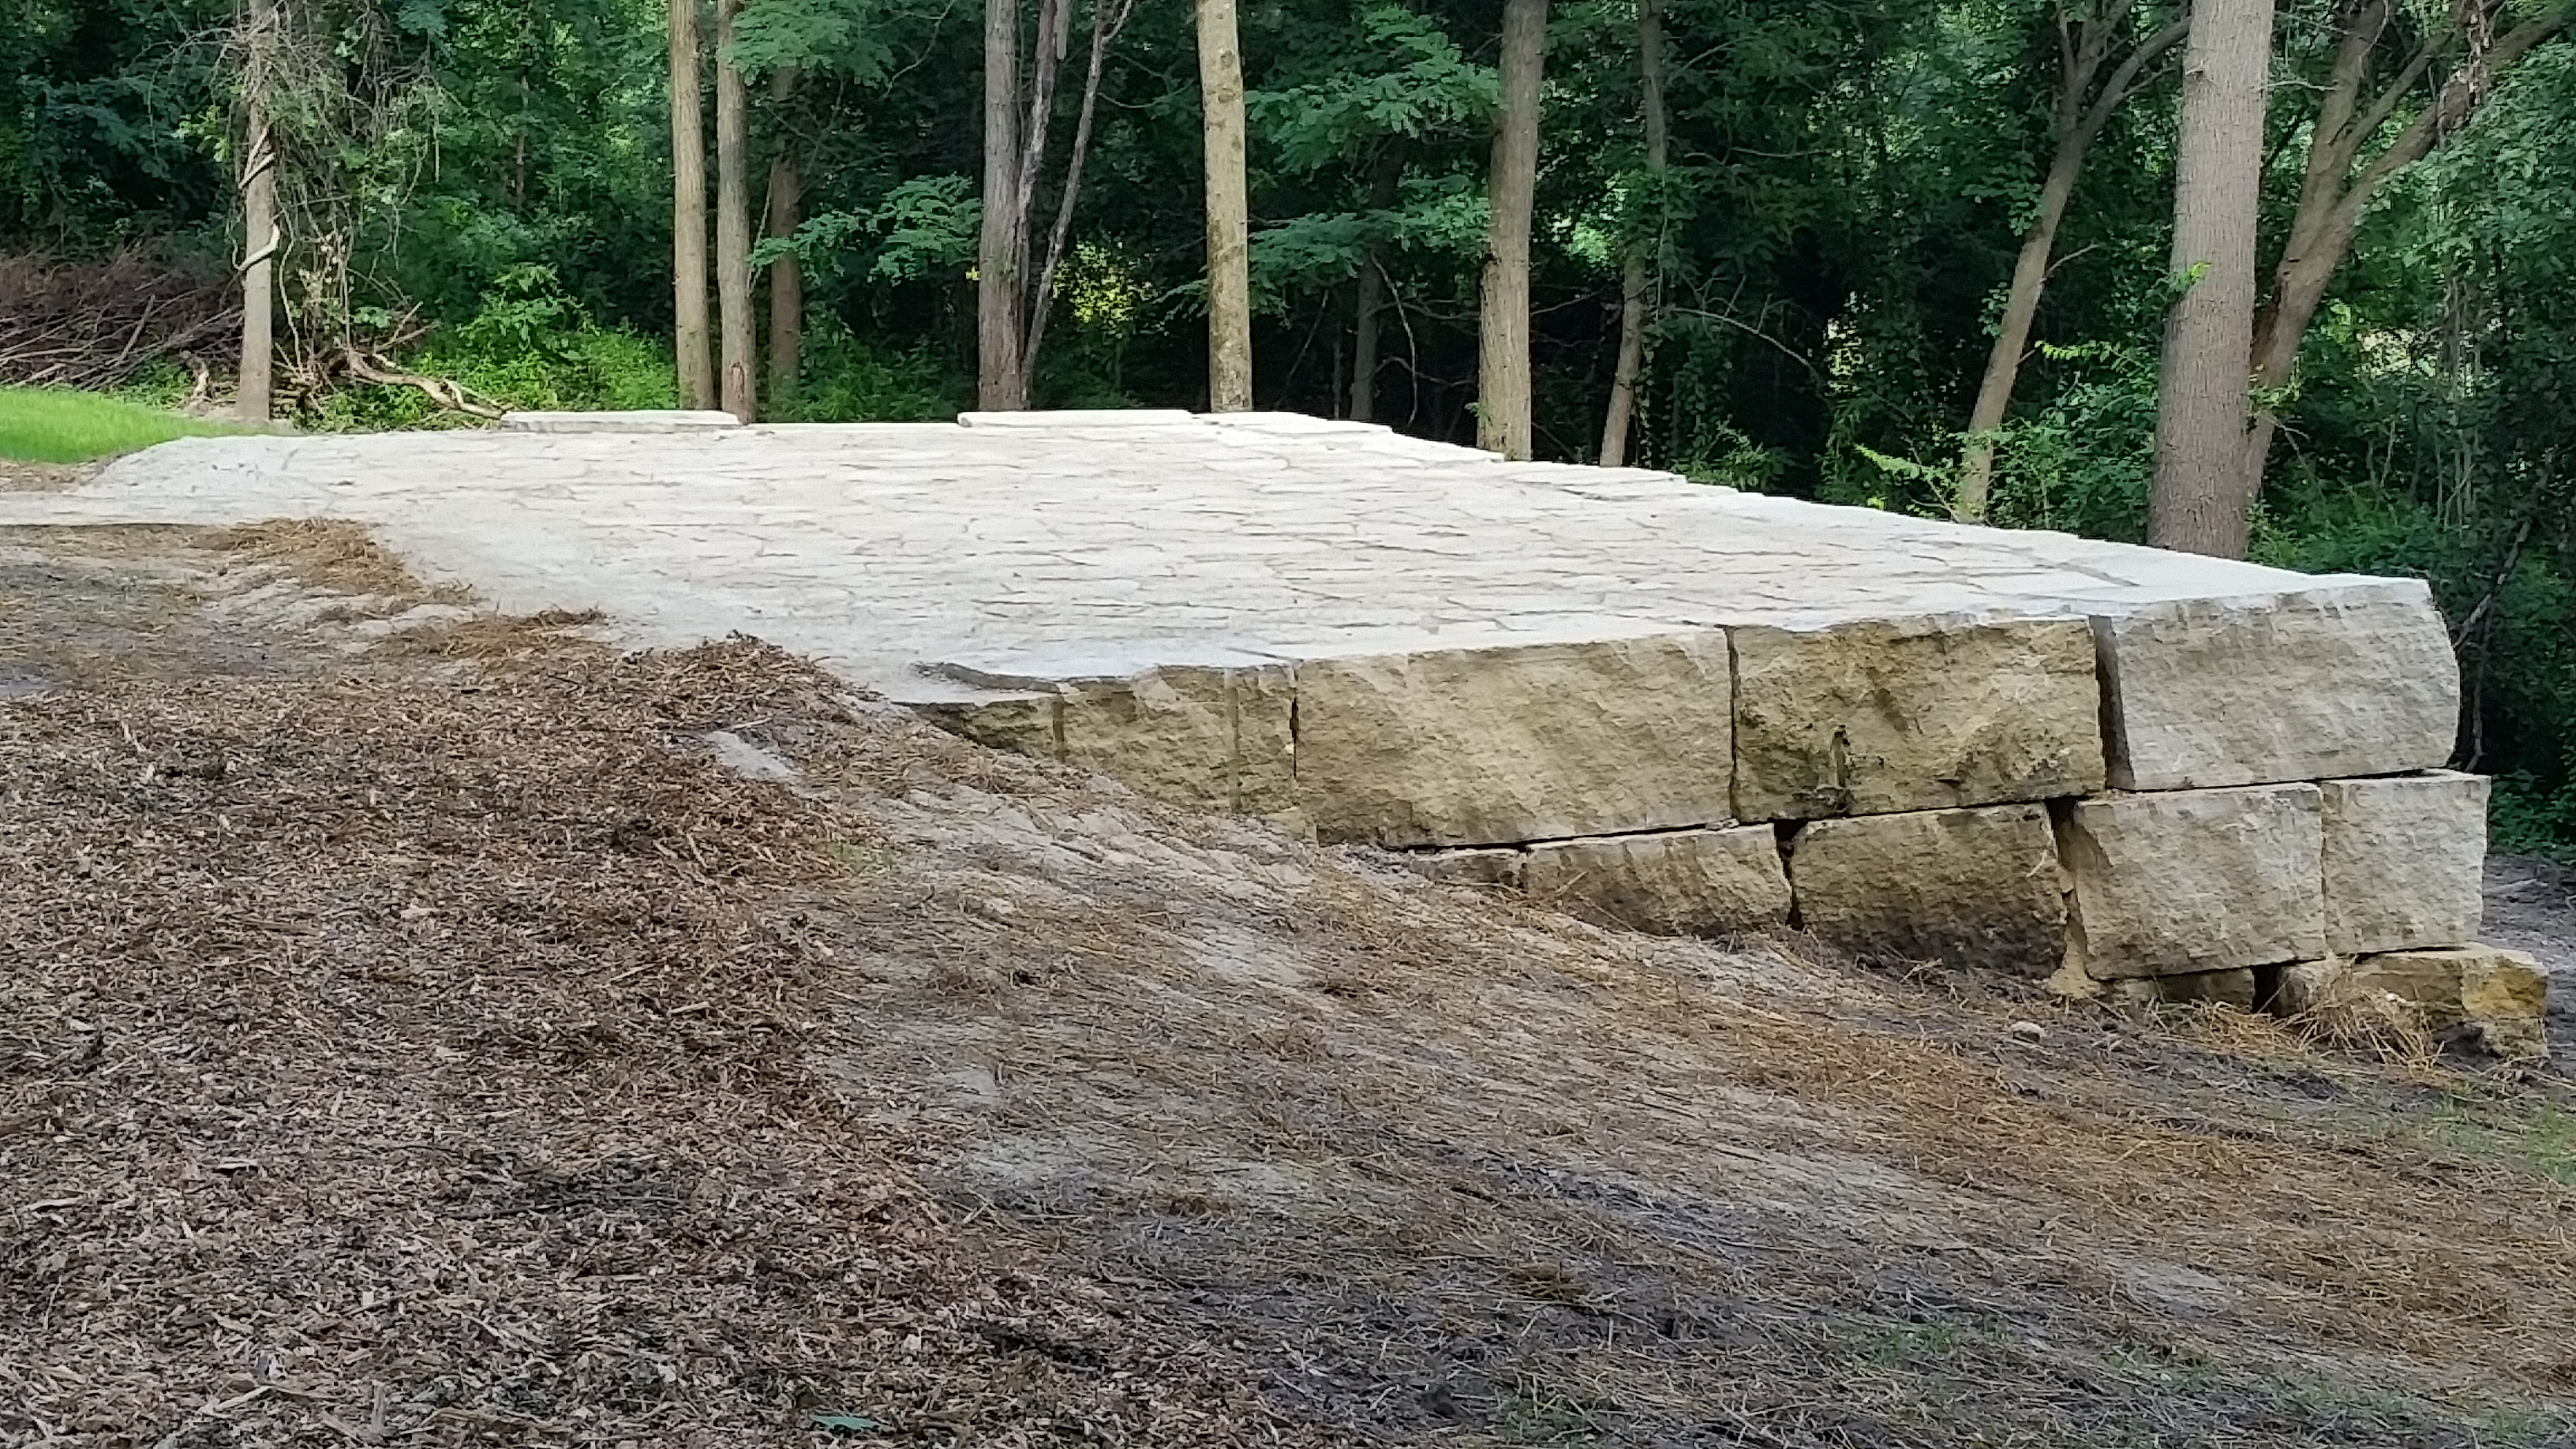 Mason Gritton led a project at Indian Creek Nature Center. He created an outdoor amphitheatre by leveling the ground, organizing/setting the flagstone and filling in the cracks. The project was completed in one weekend so the site could be available for the grand opening of the new facility. The project required 113 hours. http://www.bsatroop766.org/eagleinfo.html#MasonGritton